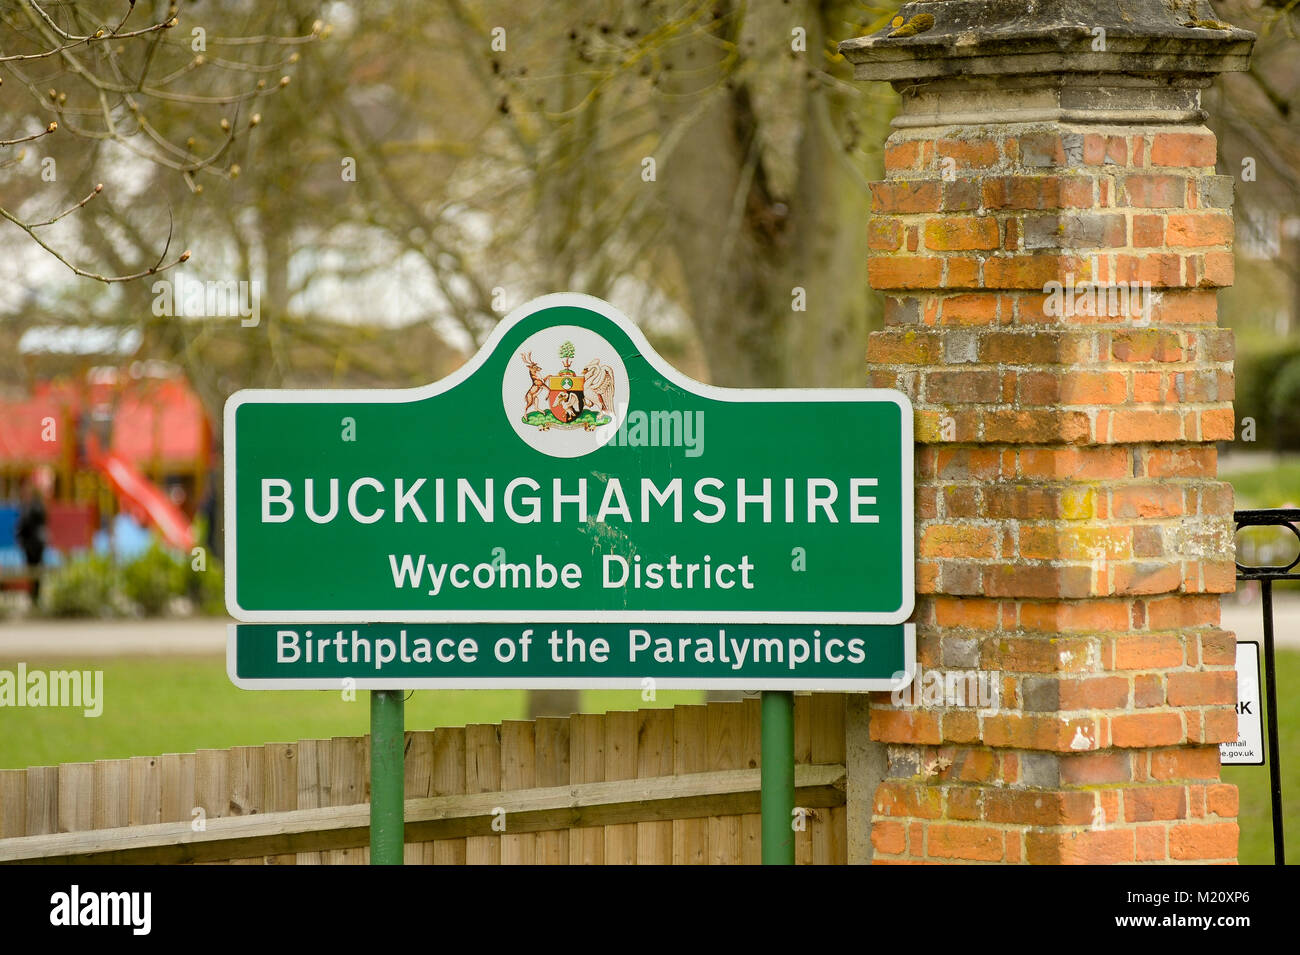 Buckinghamshire Wycombe District Birthplace of the Paralympics board in Marlow, Buckinghamshire, England, United - Stock Image